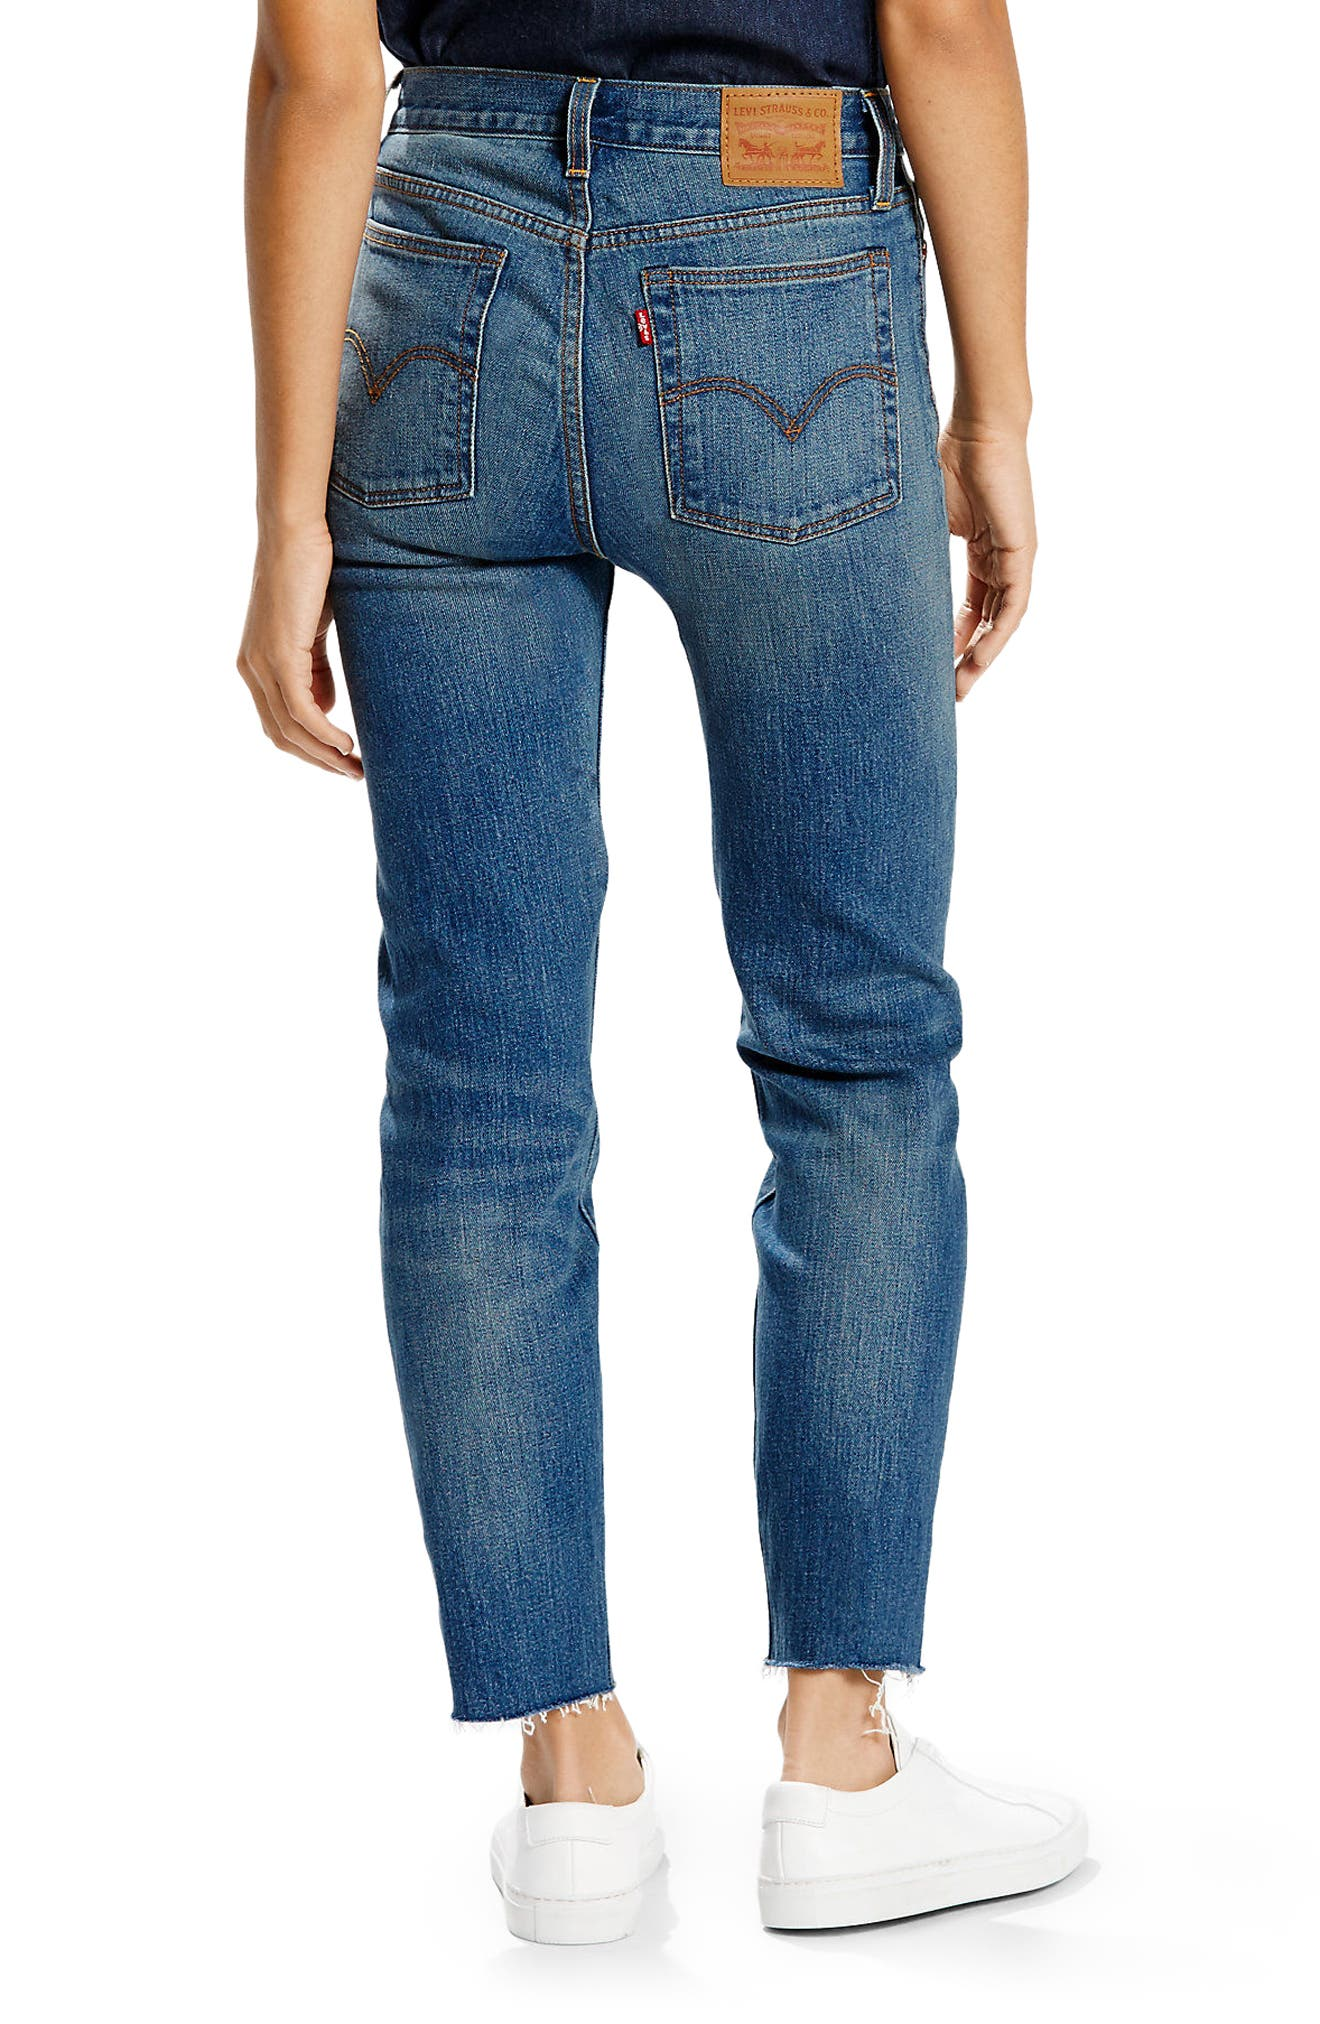 Wedgie High Waist Straight Jeans,                             Alternate thumbnail 2, color,                             400